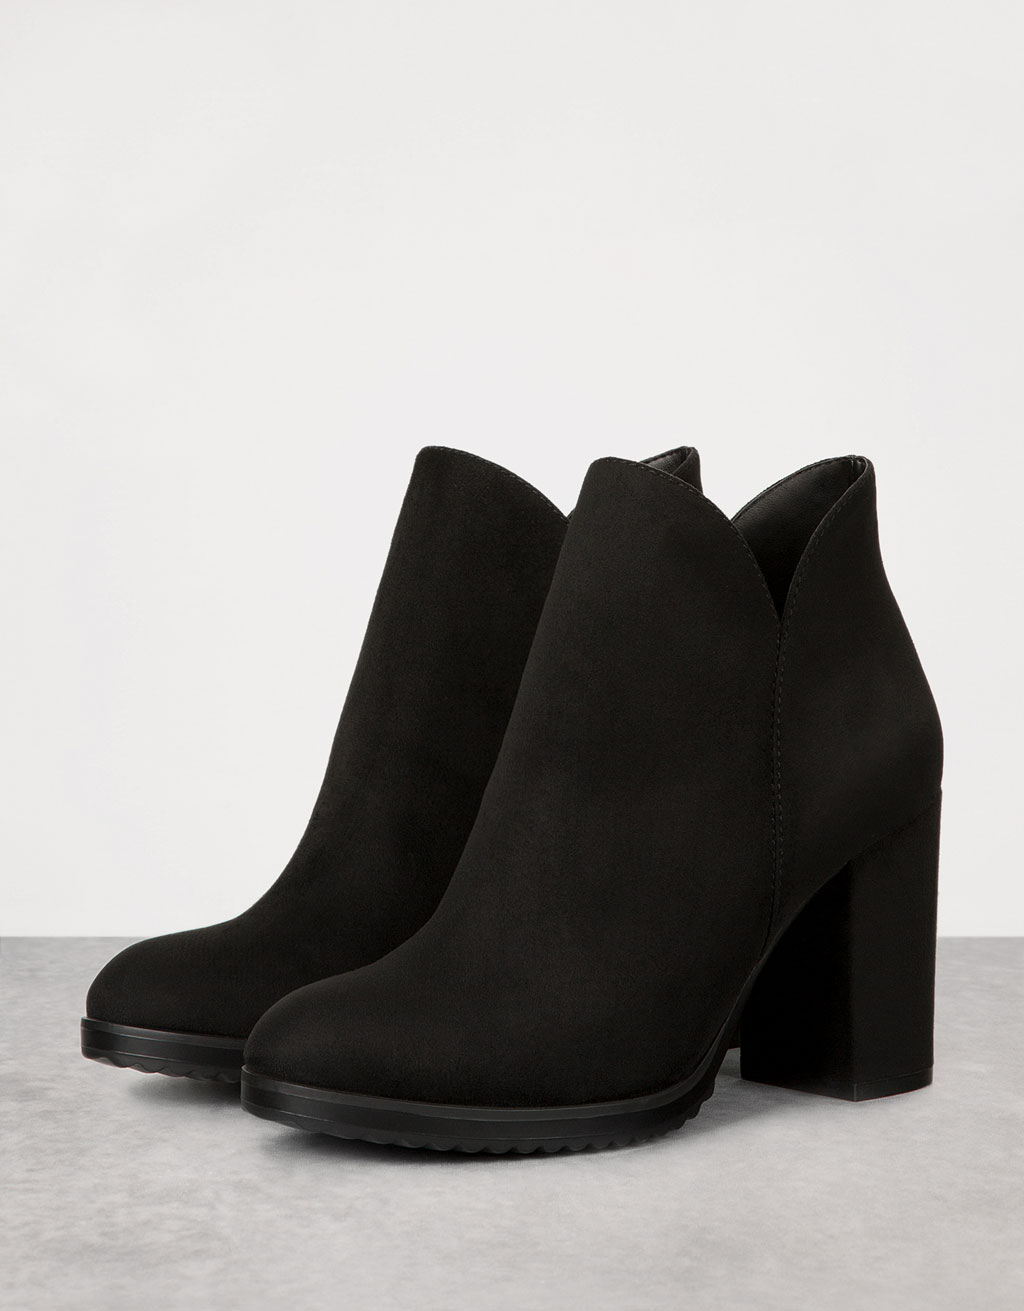 Zipped ankle boots with block mid-heel